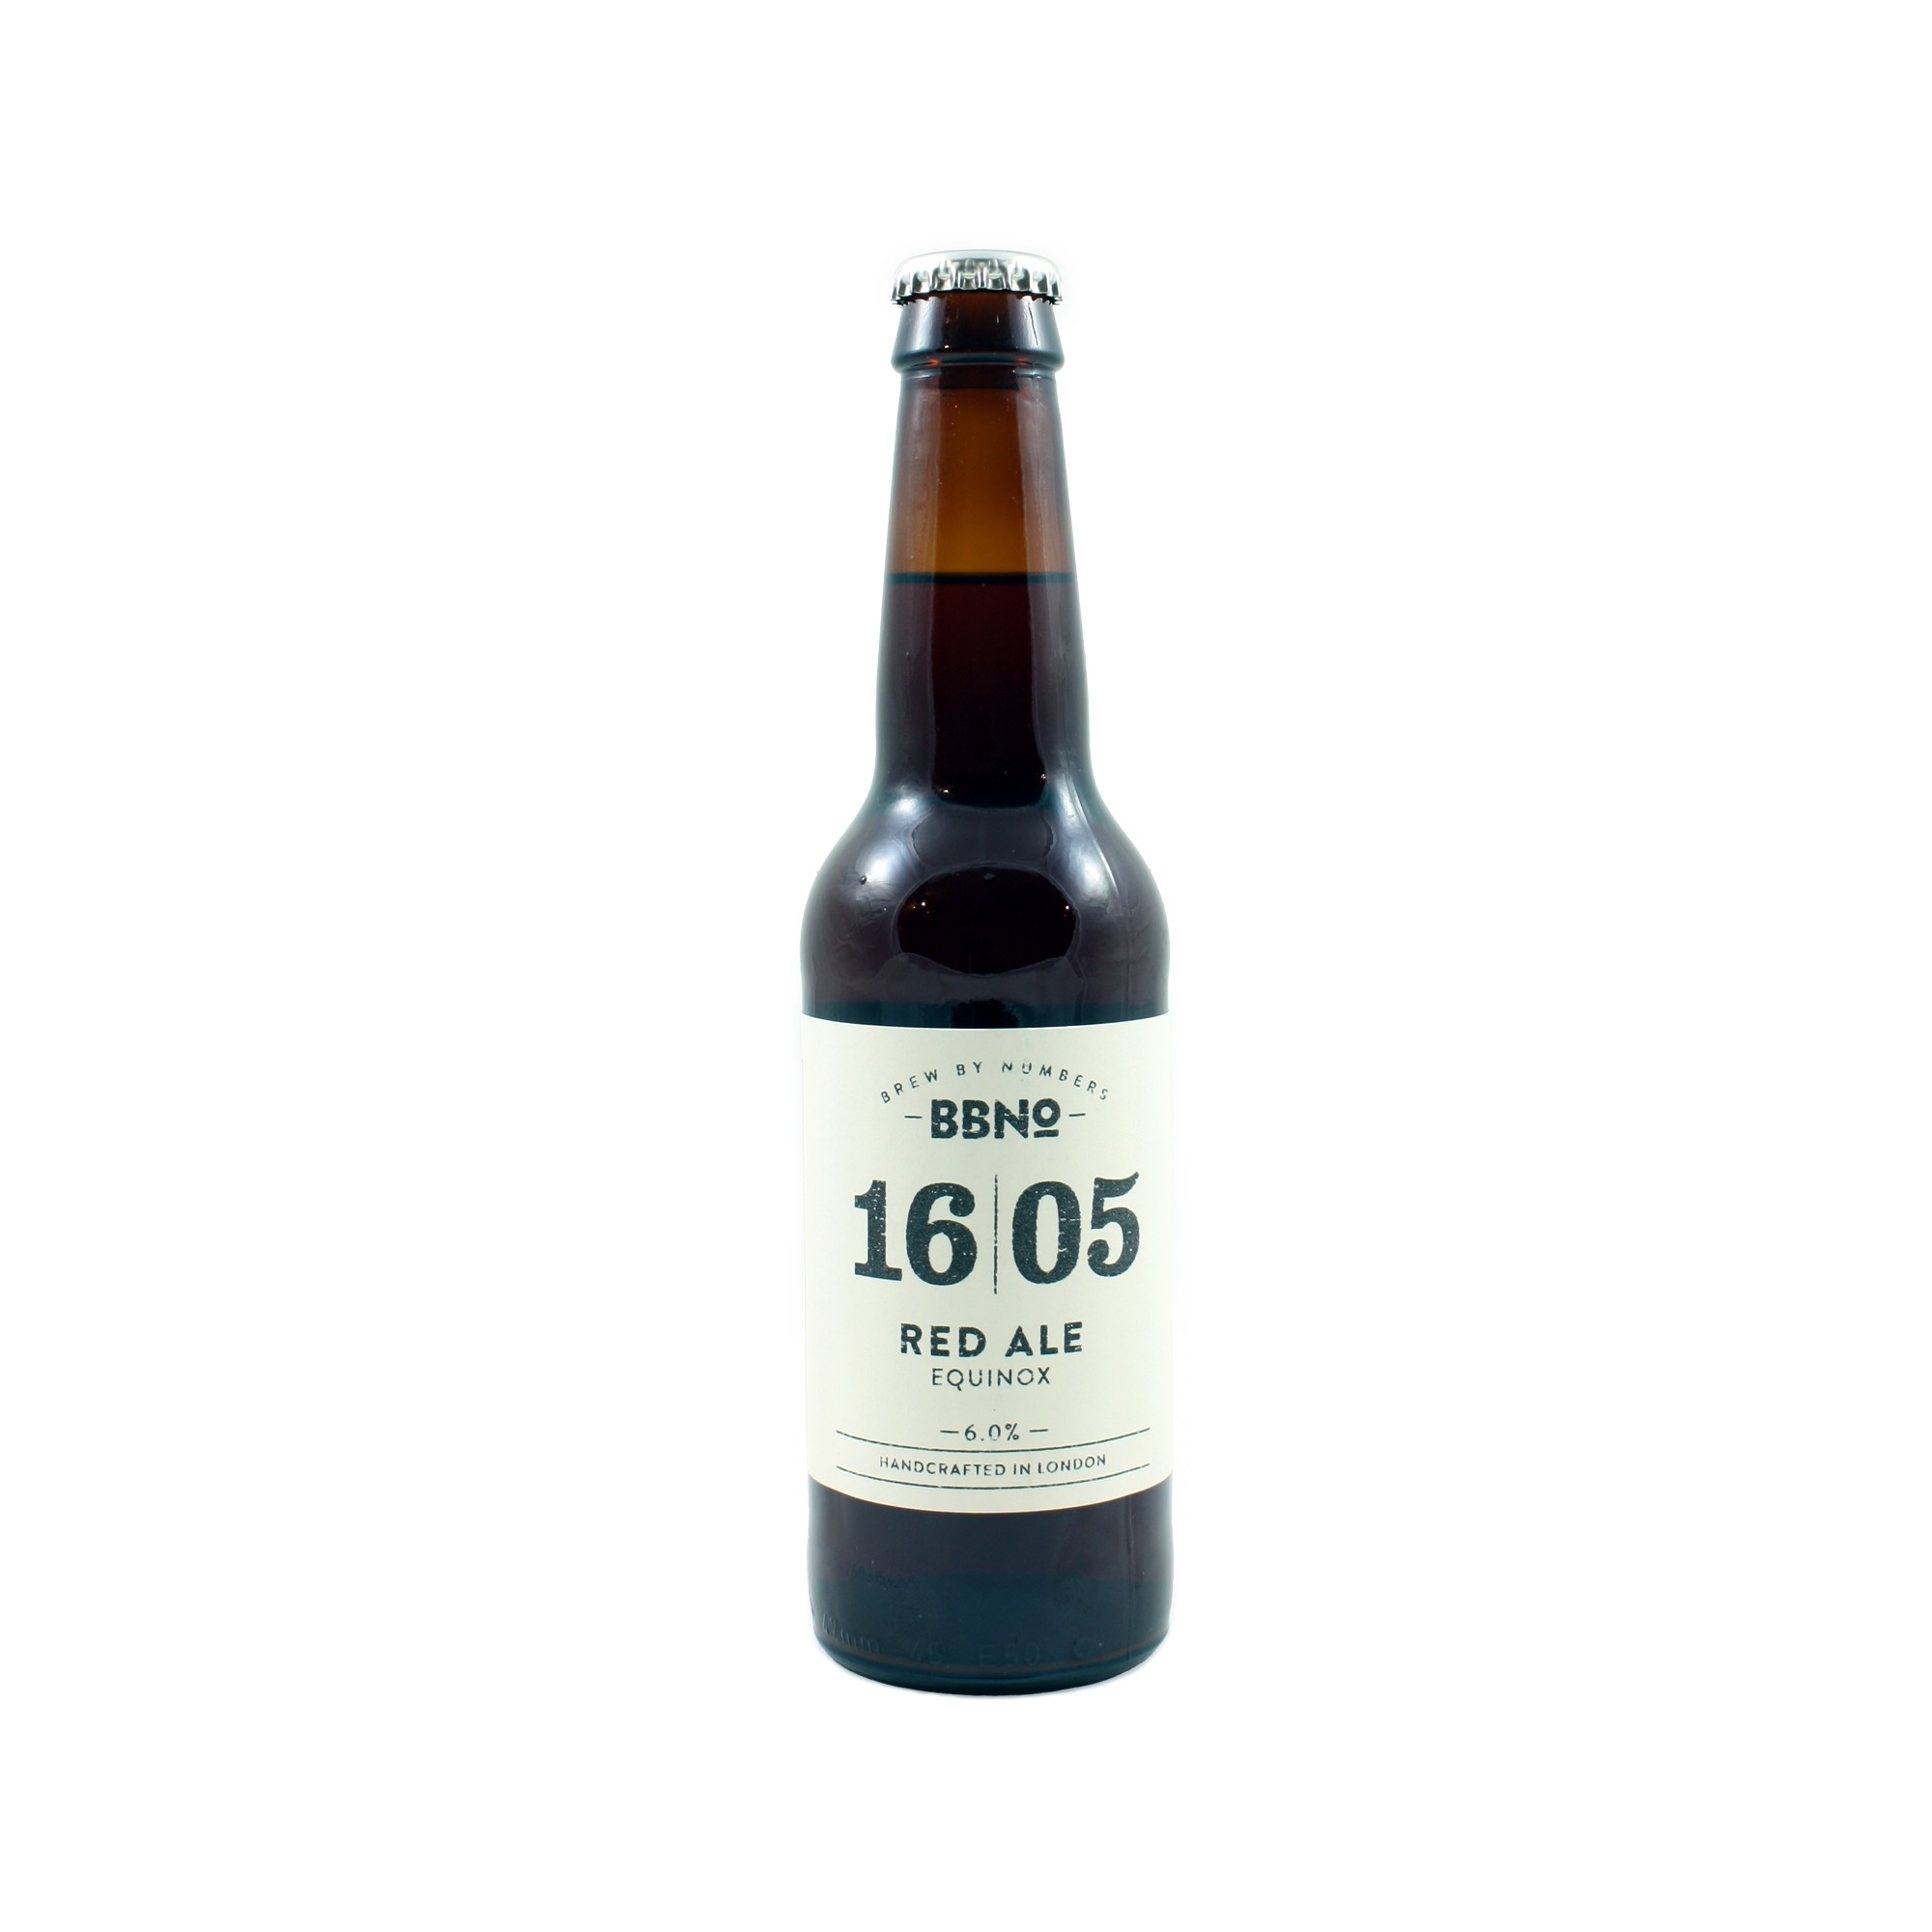 16/05 Red Ale Equinox 33 cl